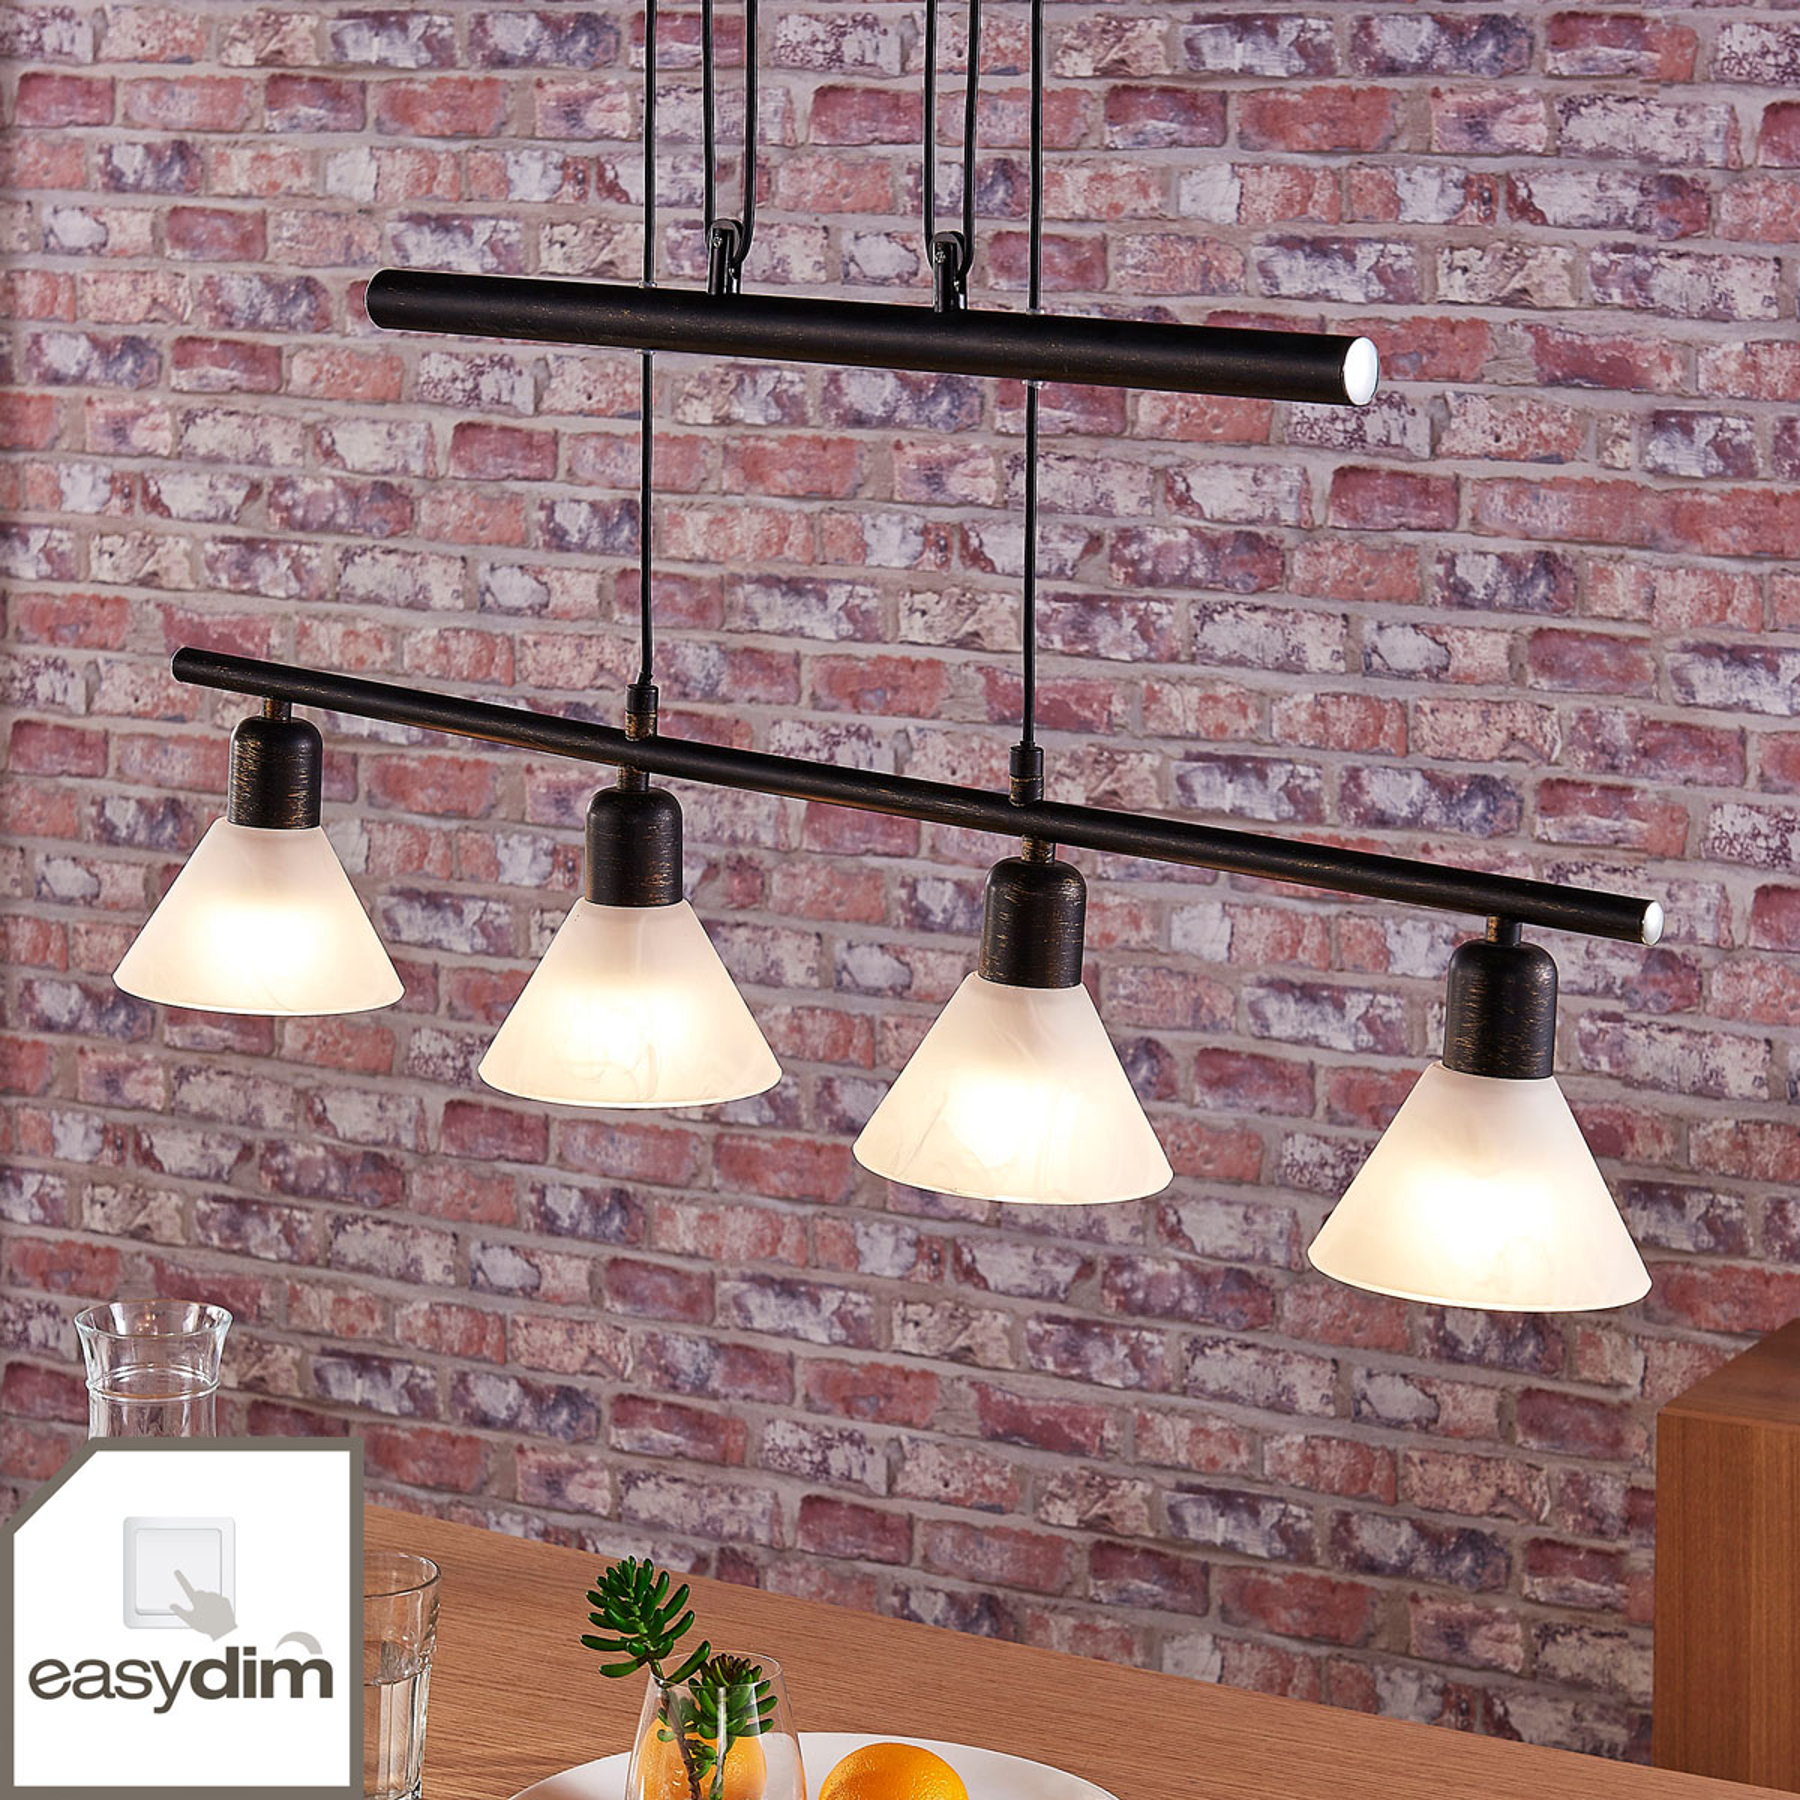 Suspension LED Eleasa, easydim à 4 lampes, noire